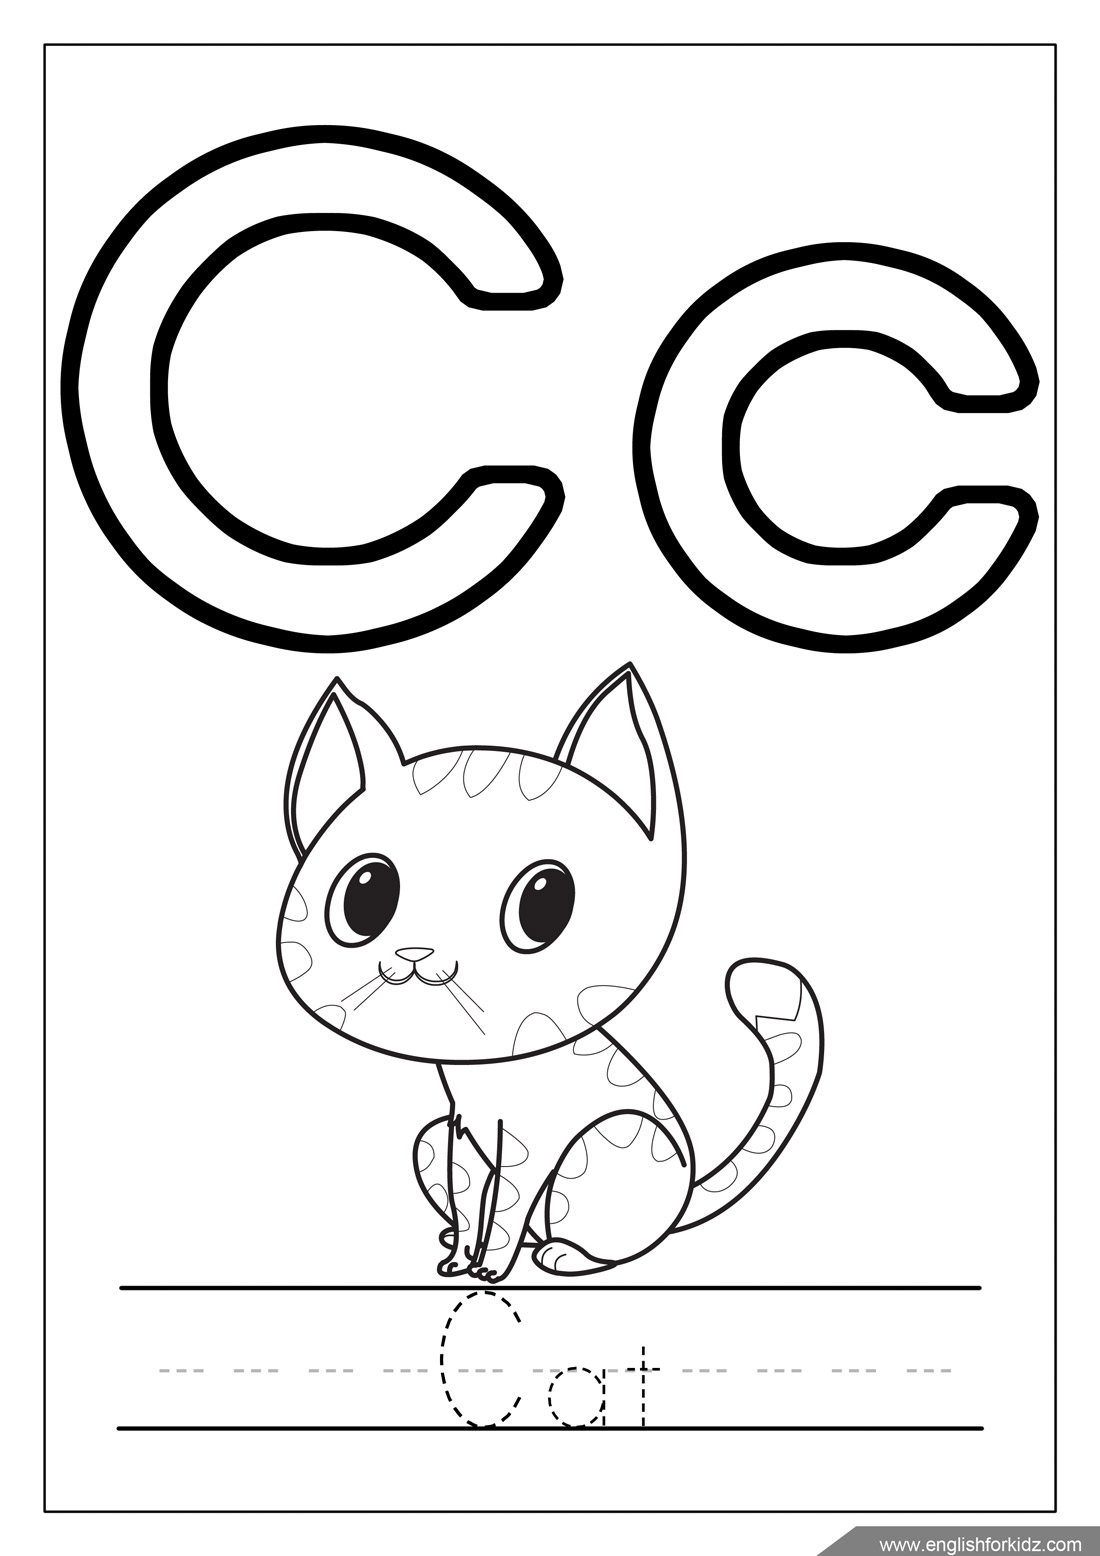 Letter C Song Cat Song For Kids Learning Abc